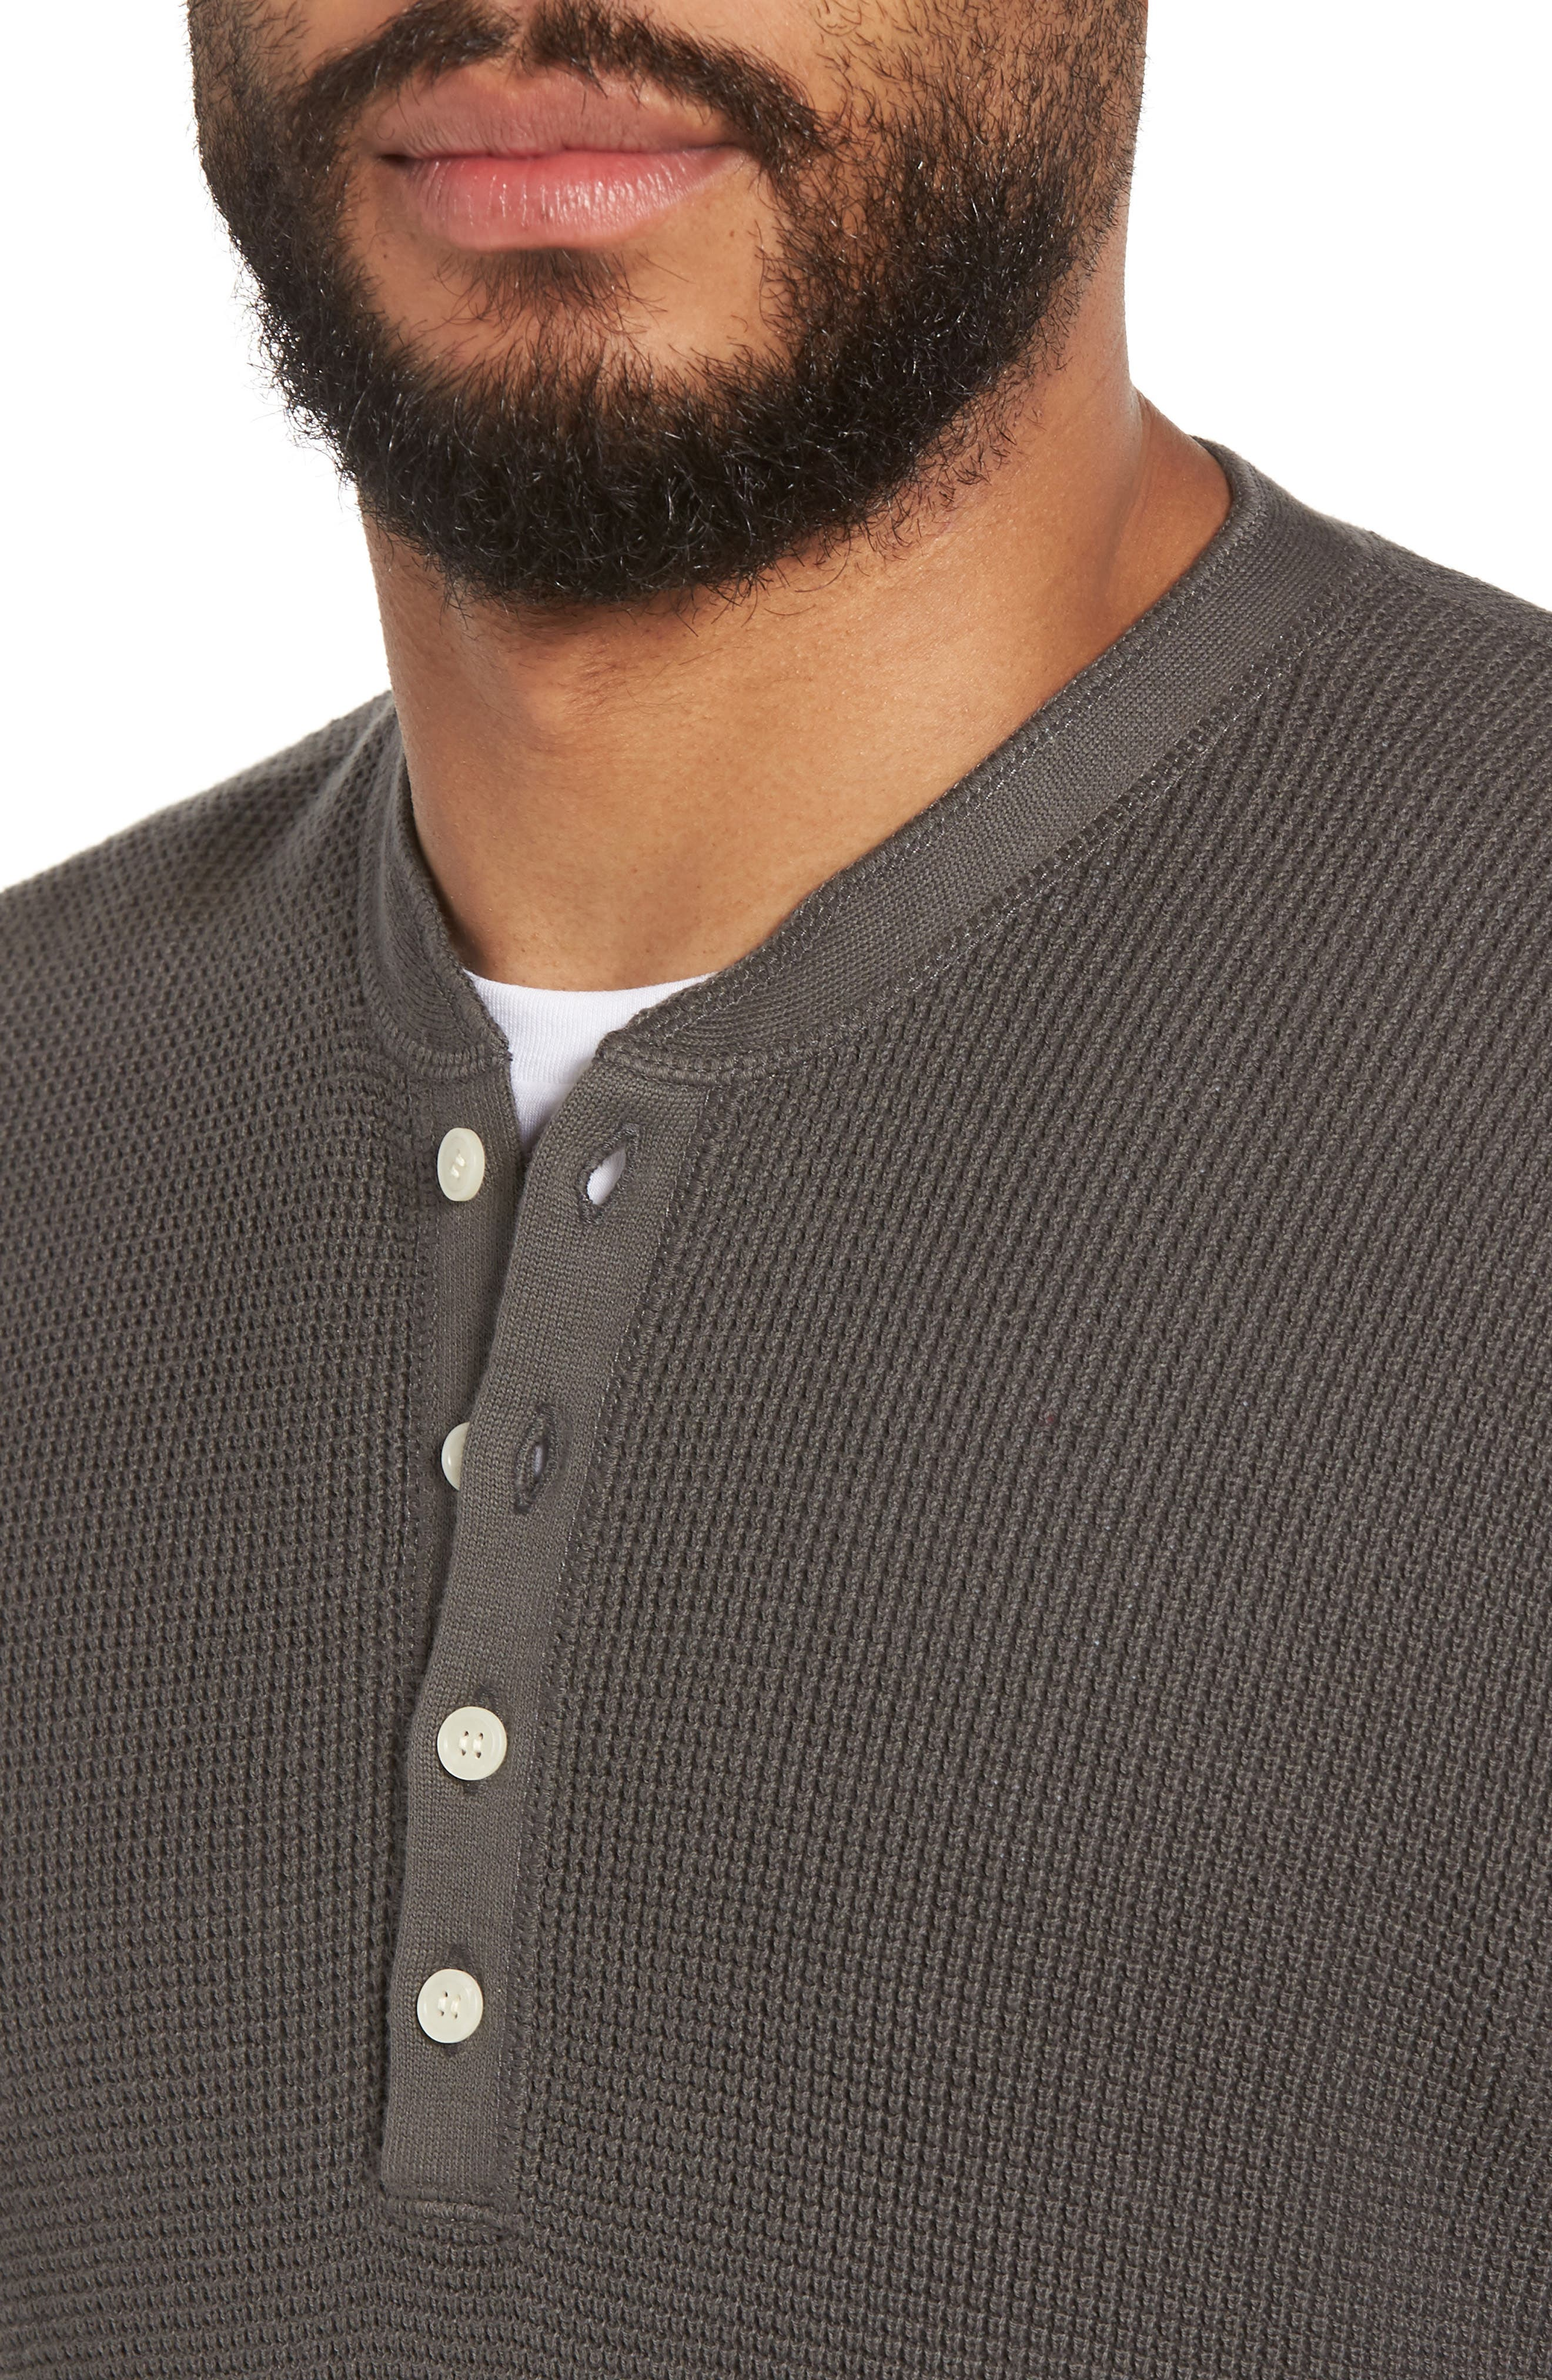 Slim Fit Thermal Henley,                             Alternate thumbnail 4, color,                             020